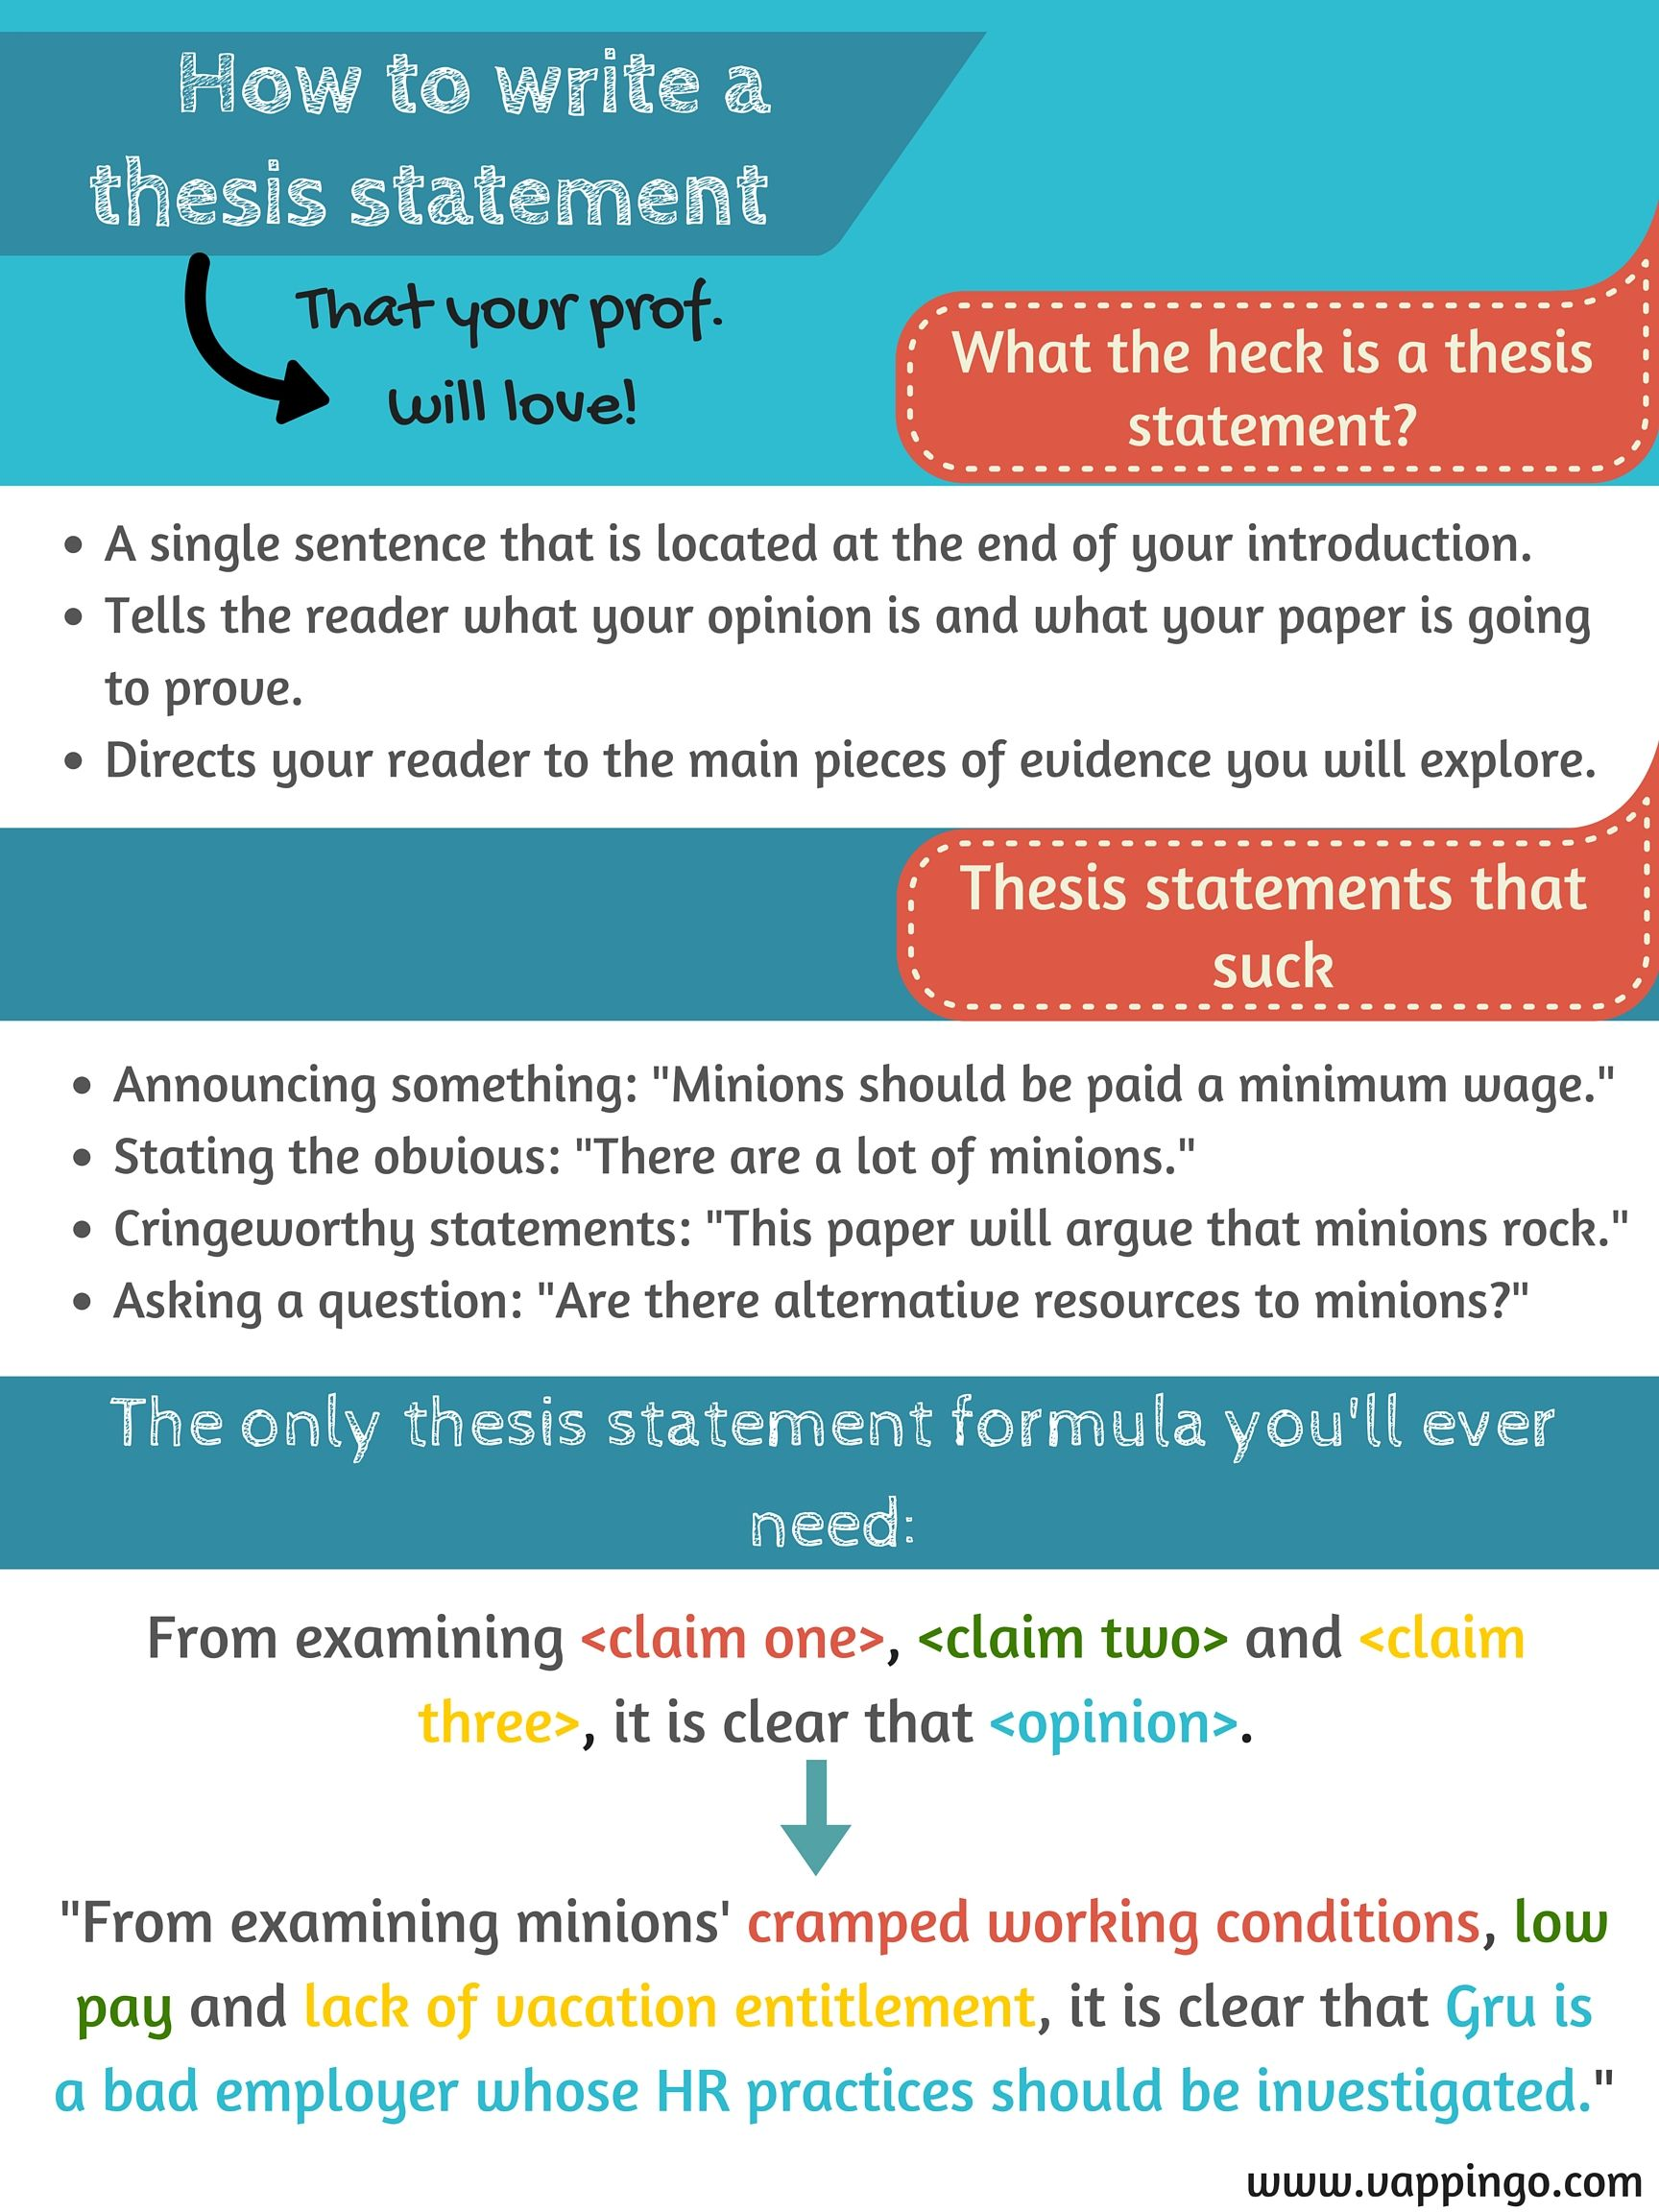 how to write a thesis sentence for a research paper A research paper thesis statement is one of the key elements to a good research paper instructors usually have a separate grading category for the research paper thesis, so it is important.